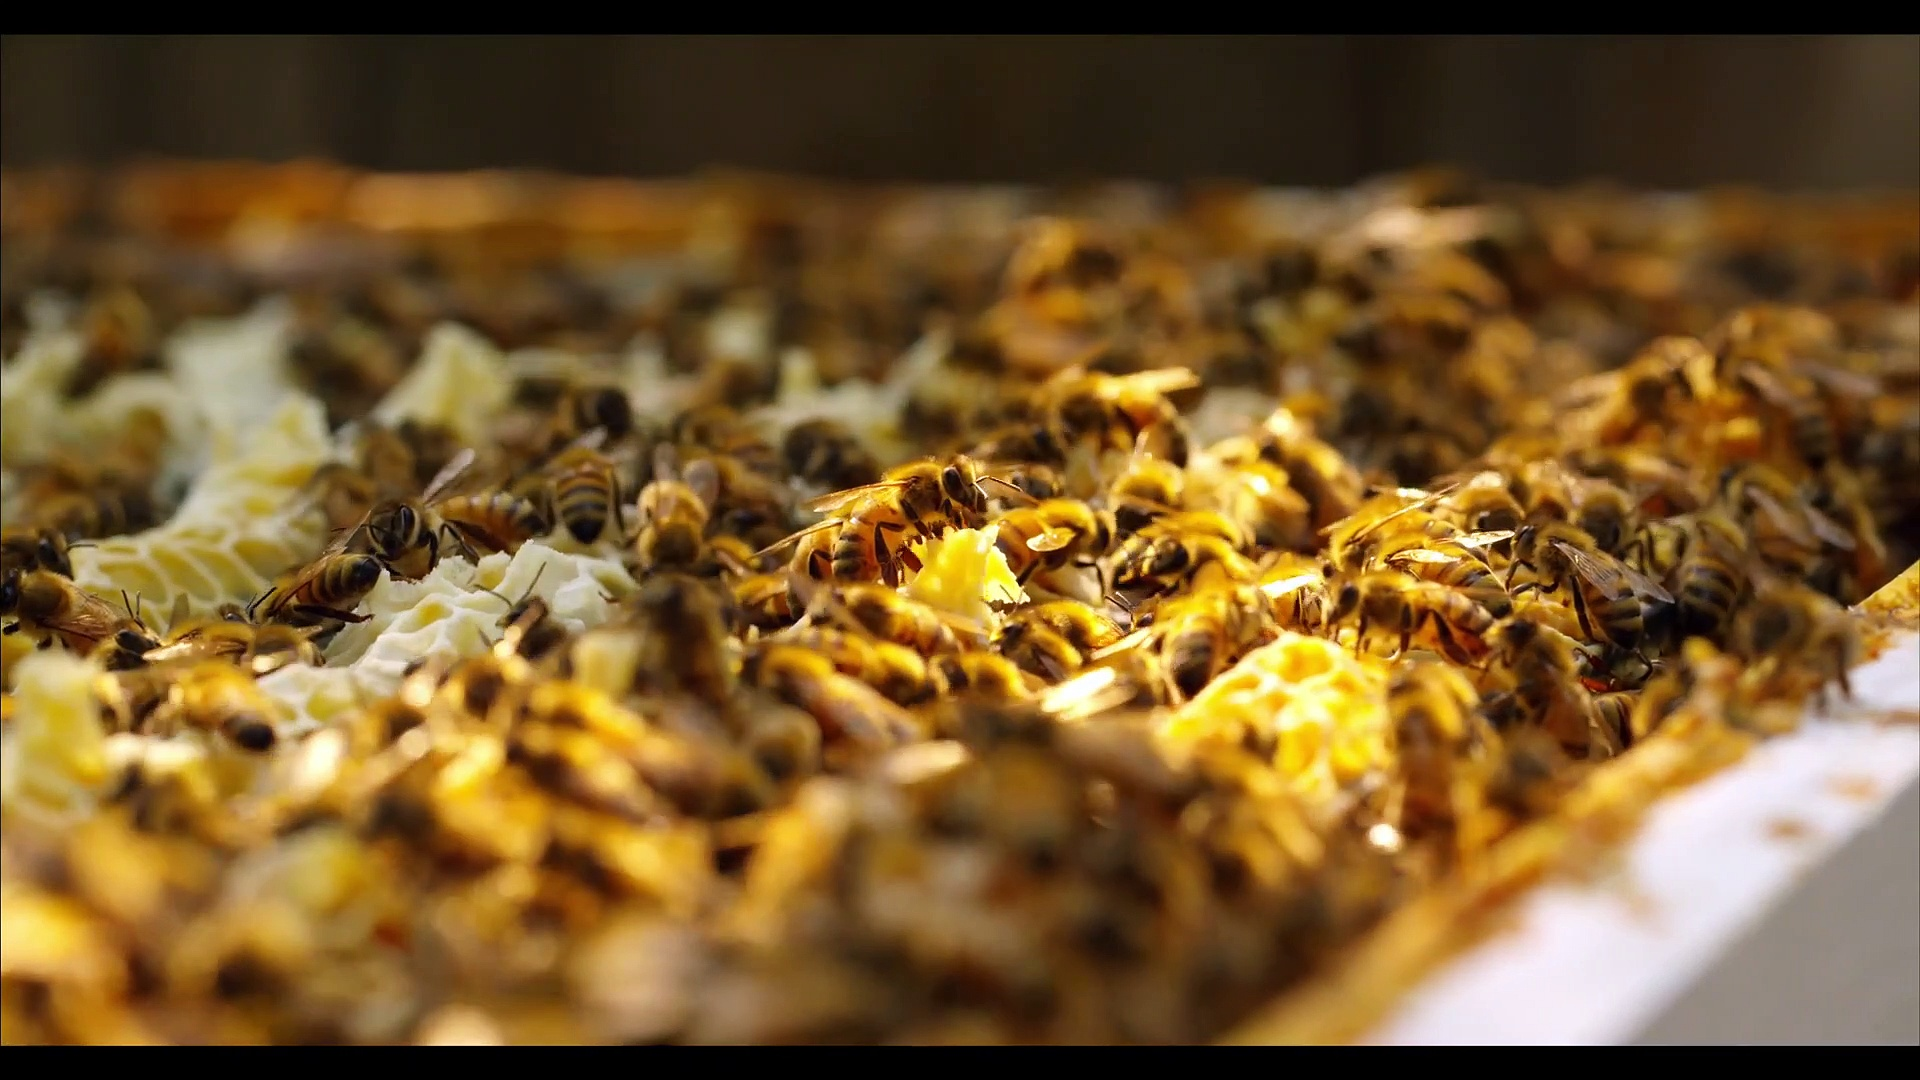 Jacob Schwarz 4K Video – Honey Bees in 4K UHD 60 FPS